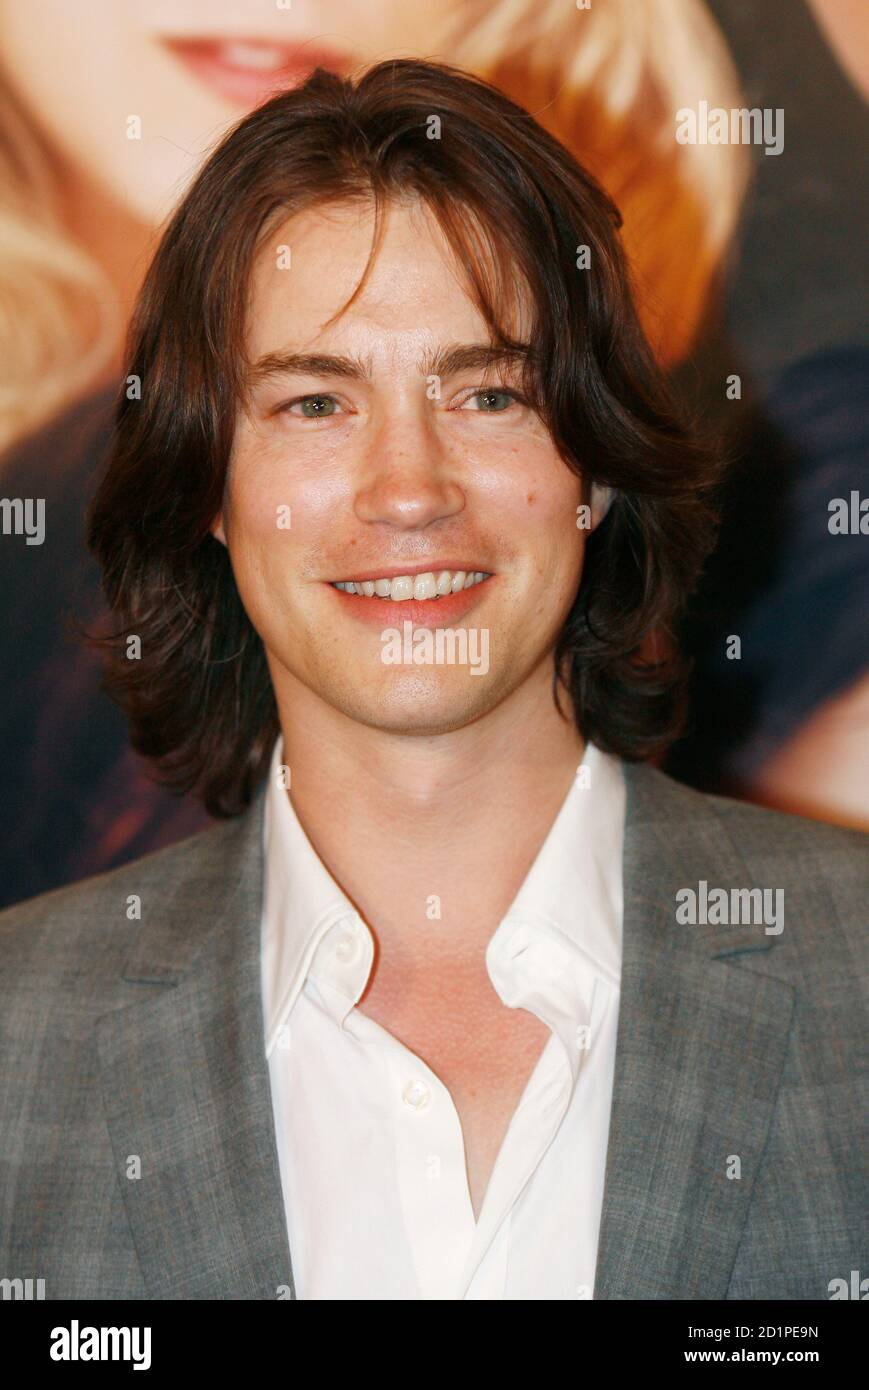 Actor Tom Wisdom arrives for the premiere of the film